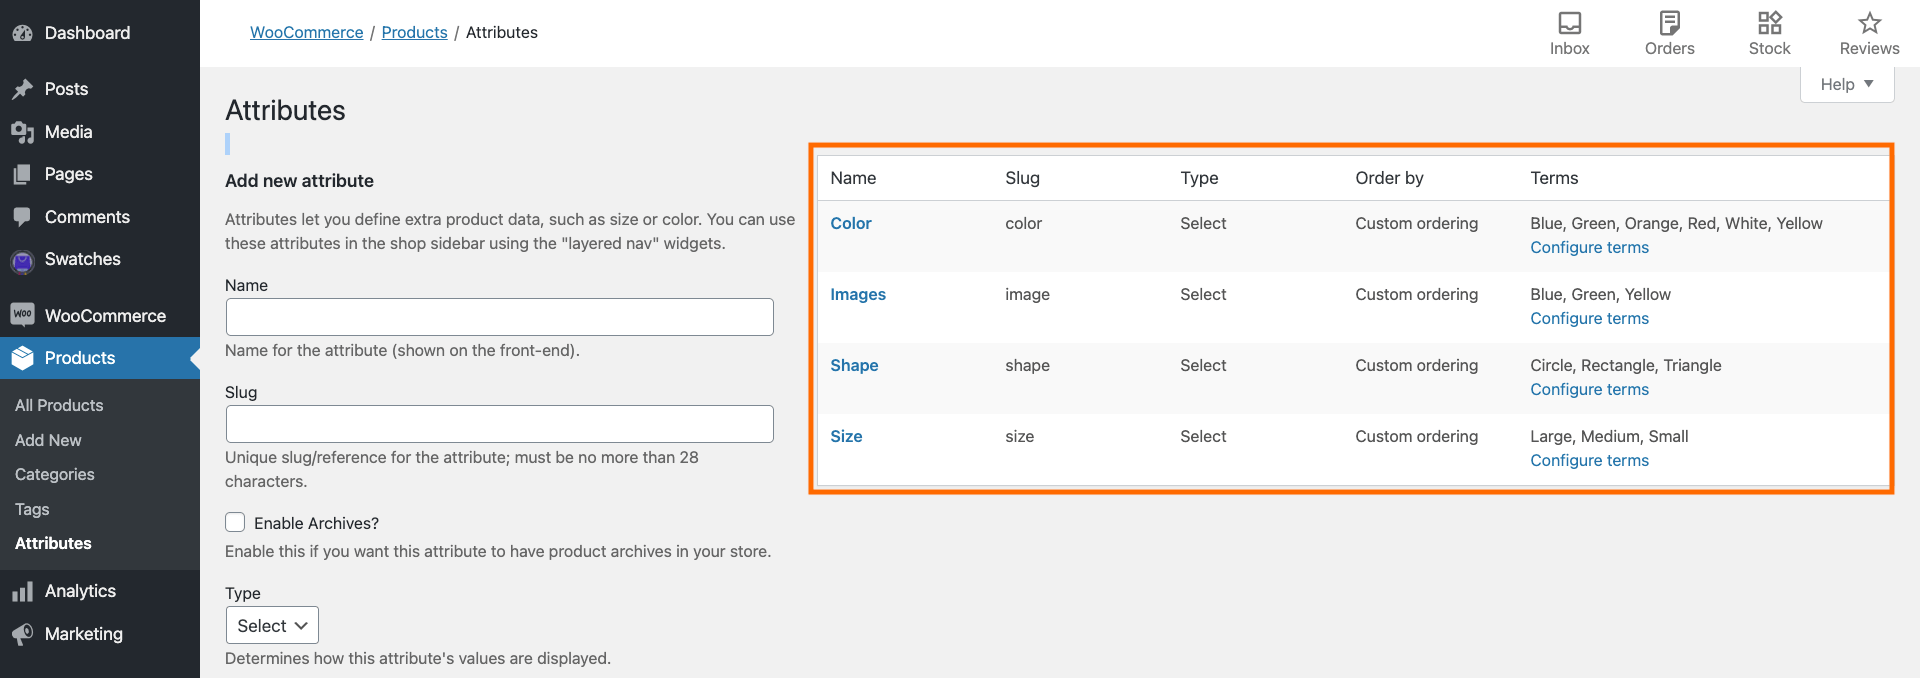 WooCommerce Attributes Page